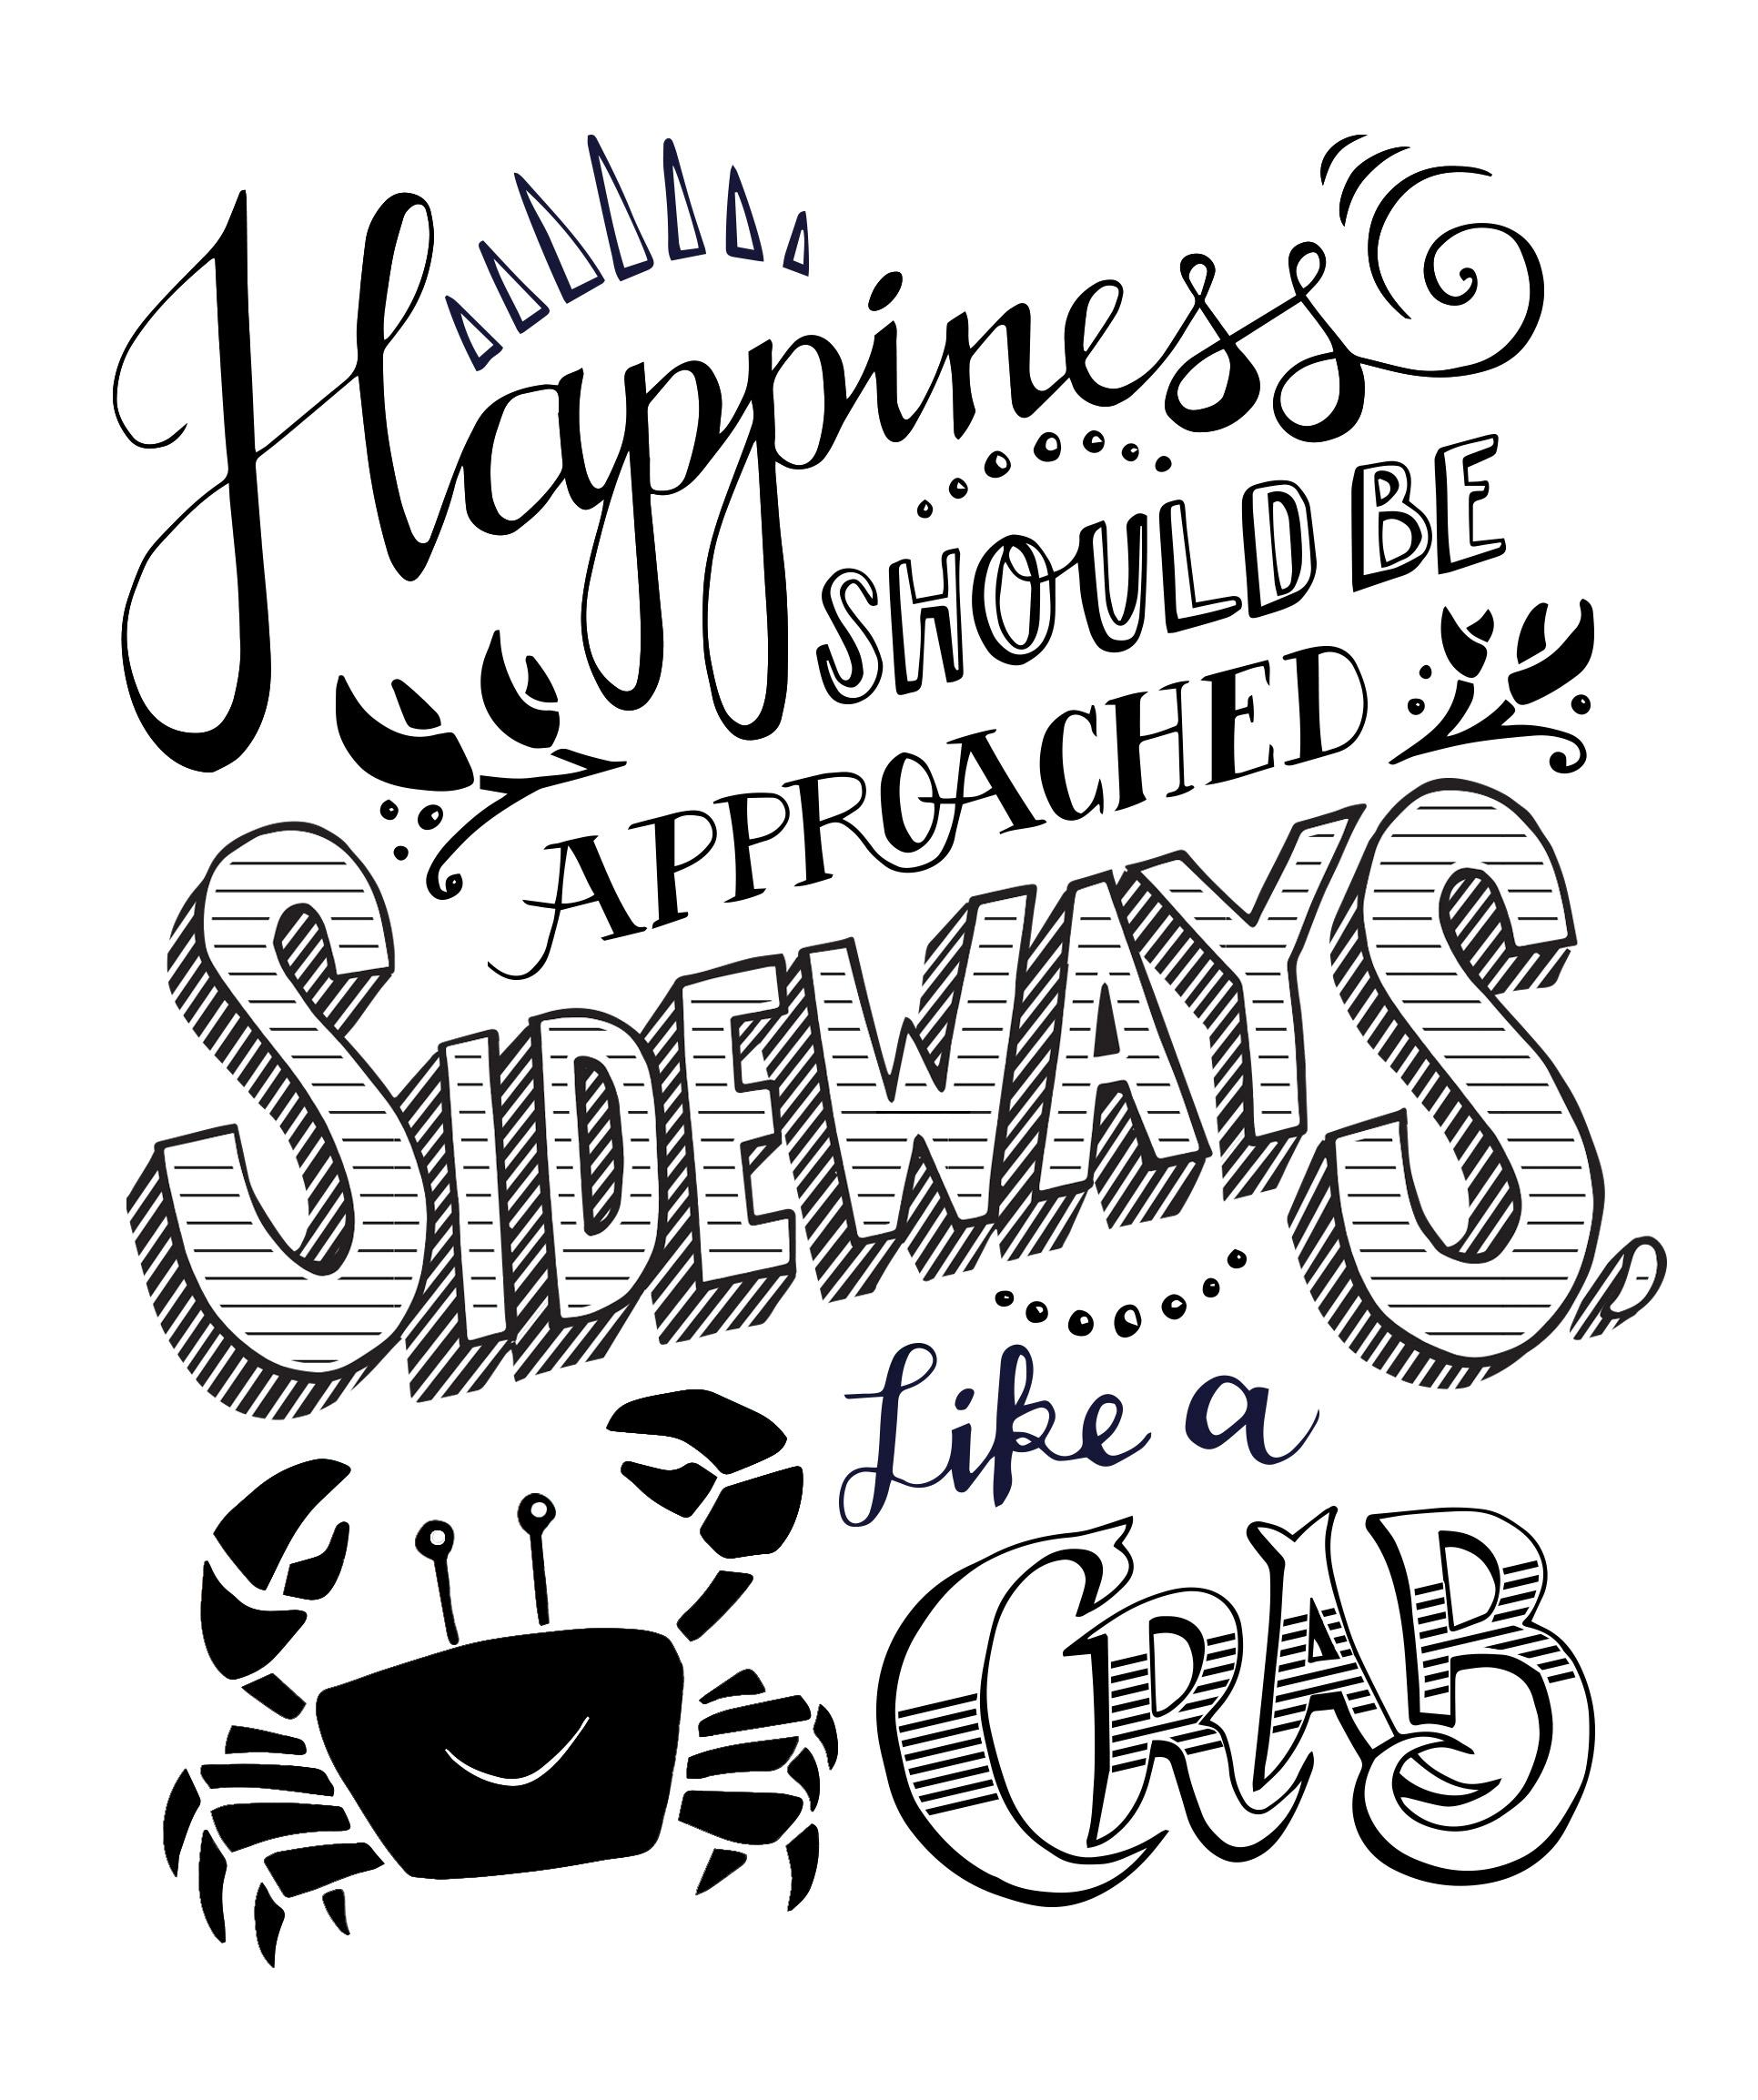 Happiness should be approached sideways, like a crab. - image 4 - student project